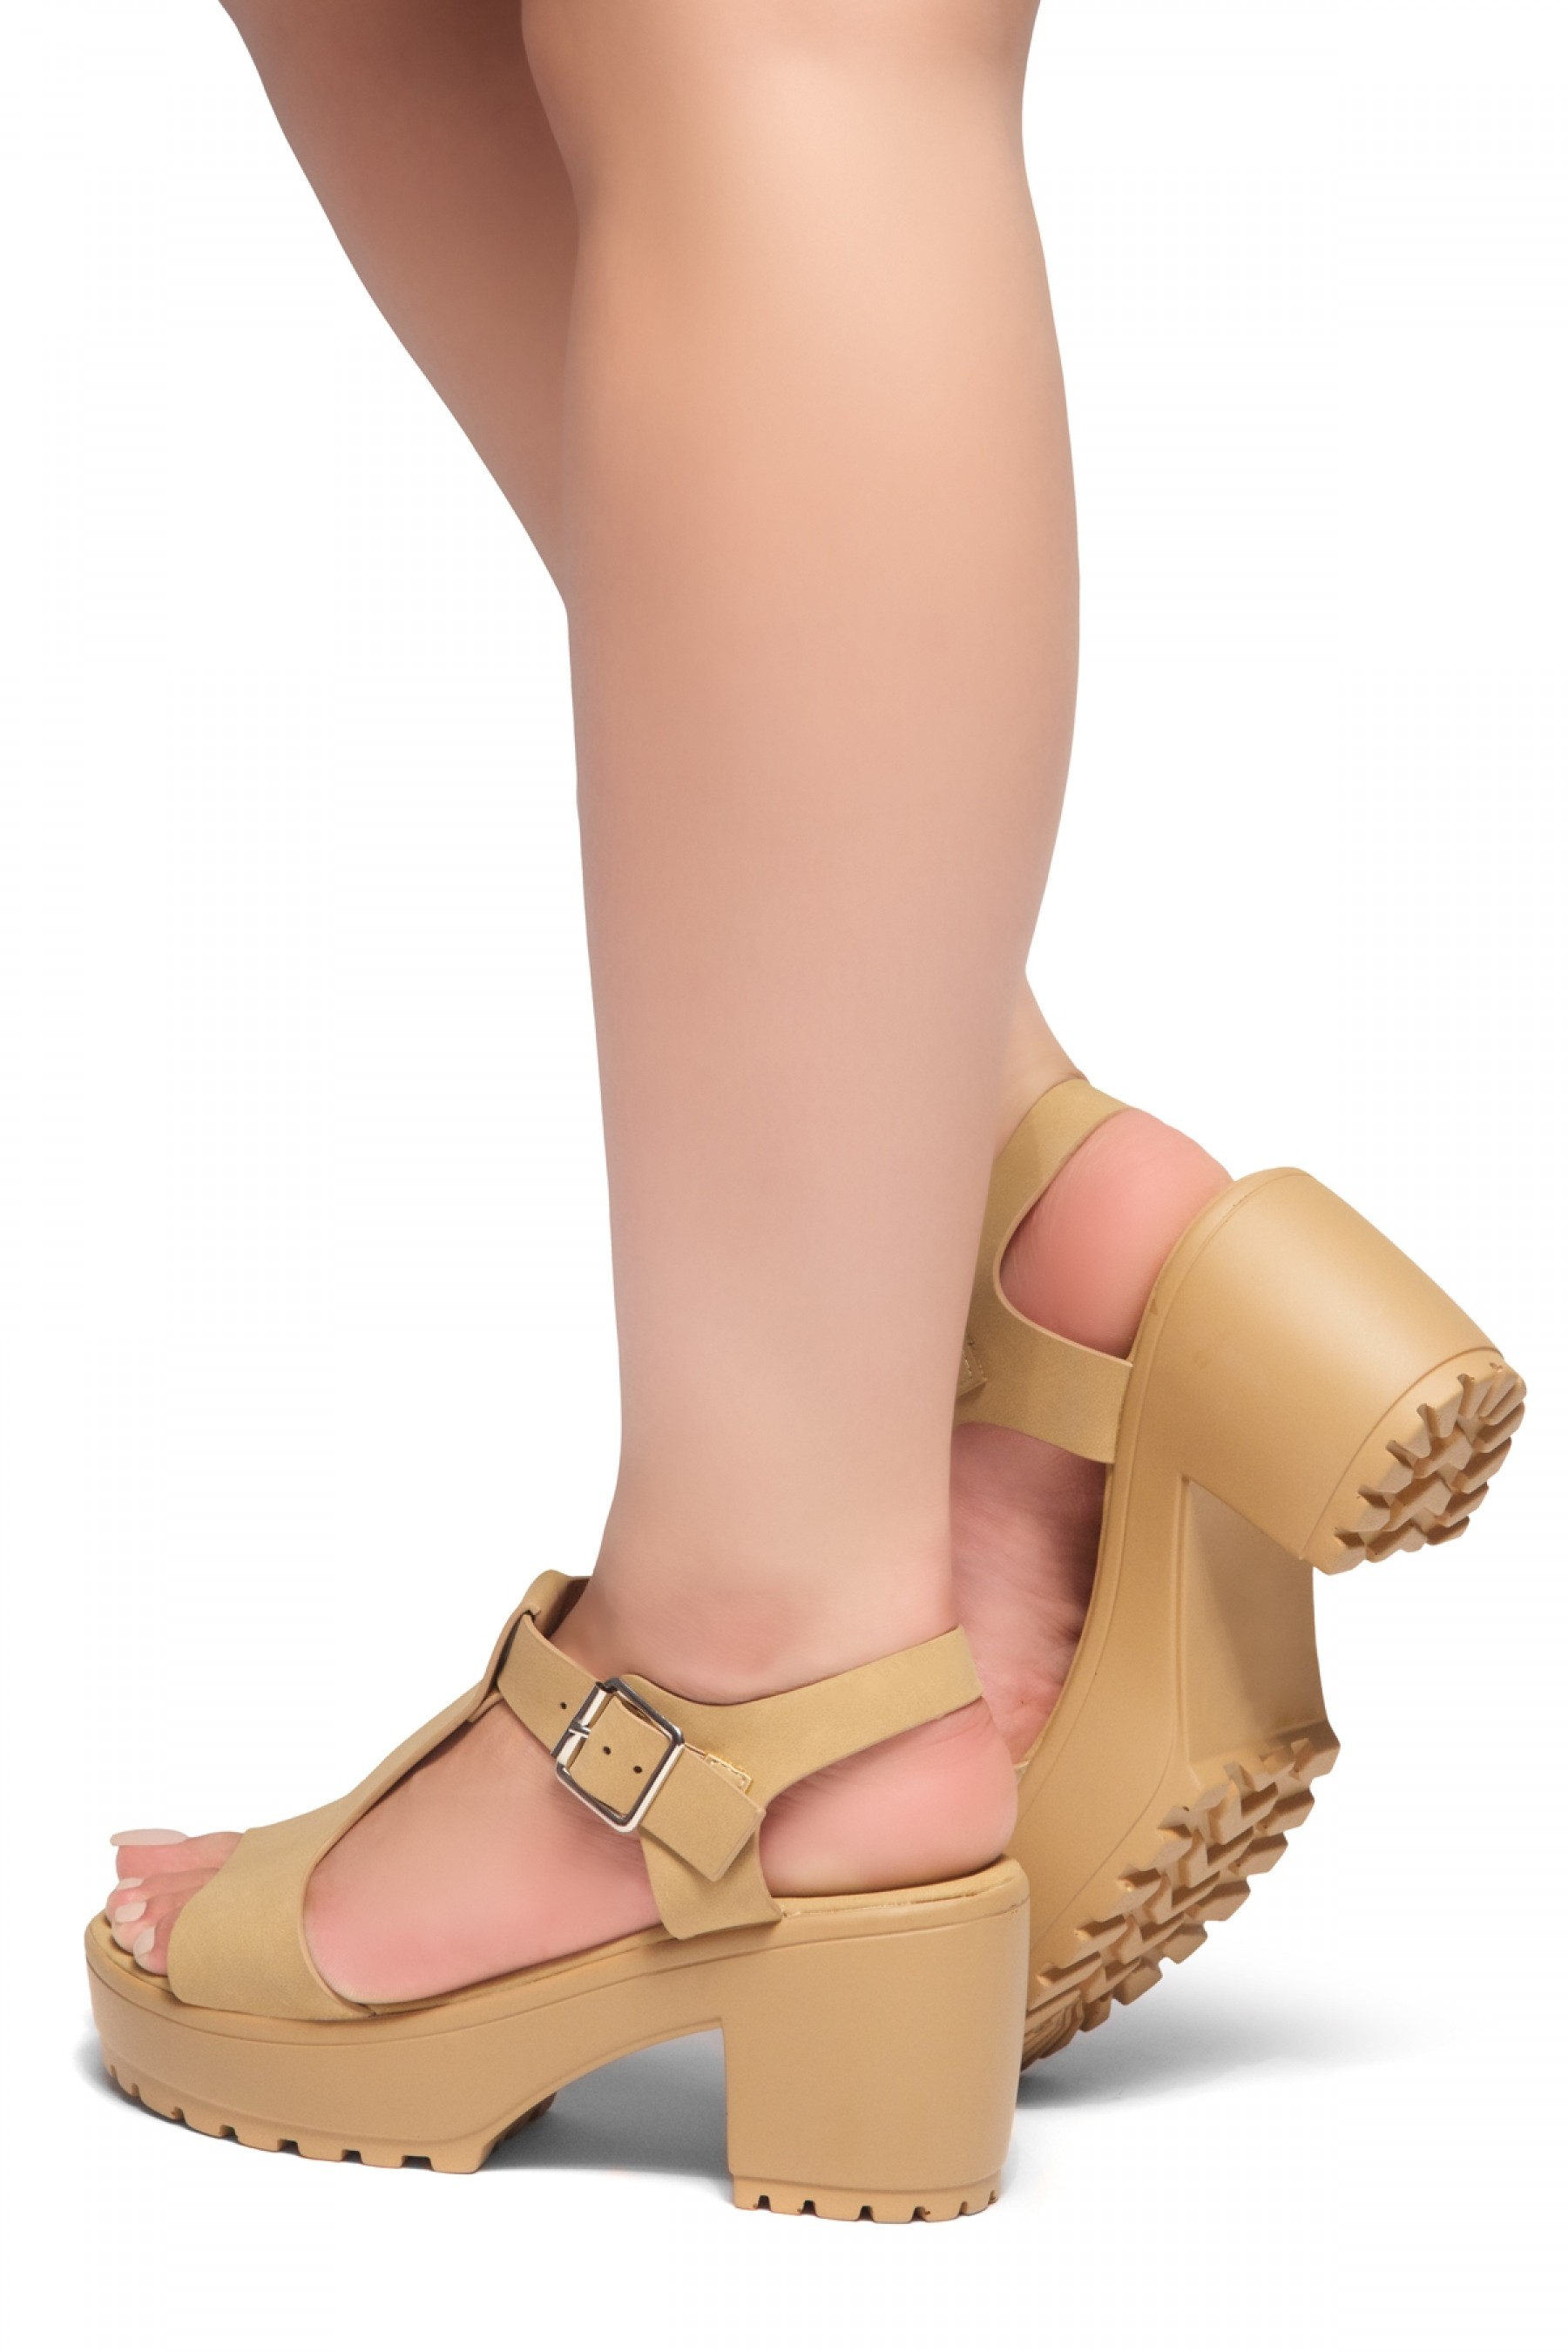 HerStyle Arran-Open Toe Ankle Strap Platform Block Heel (Tan)